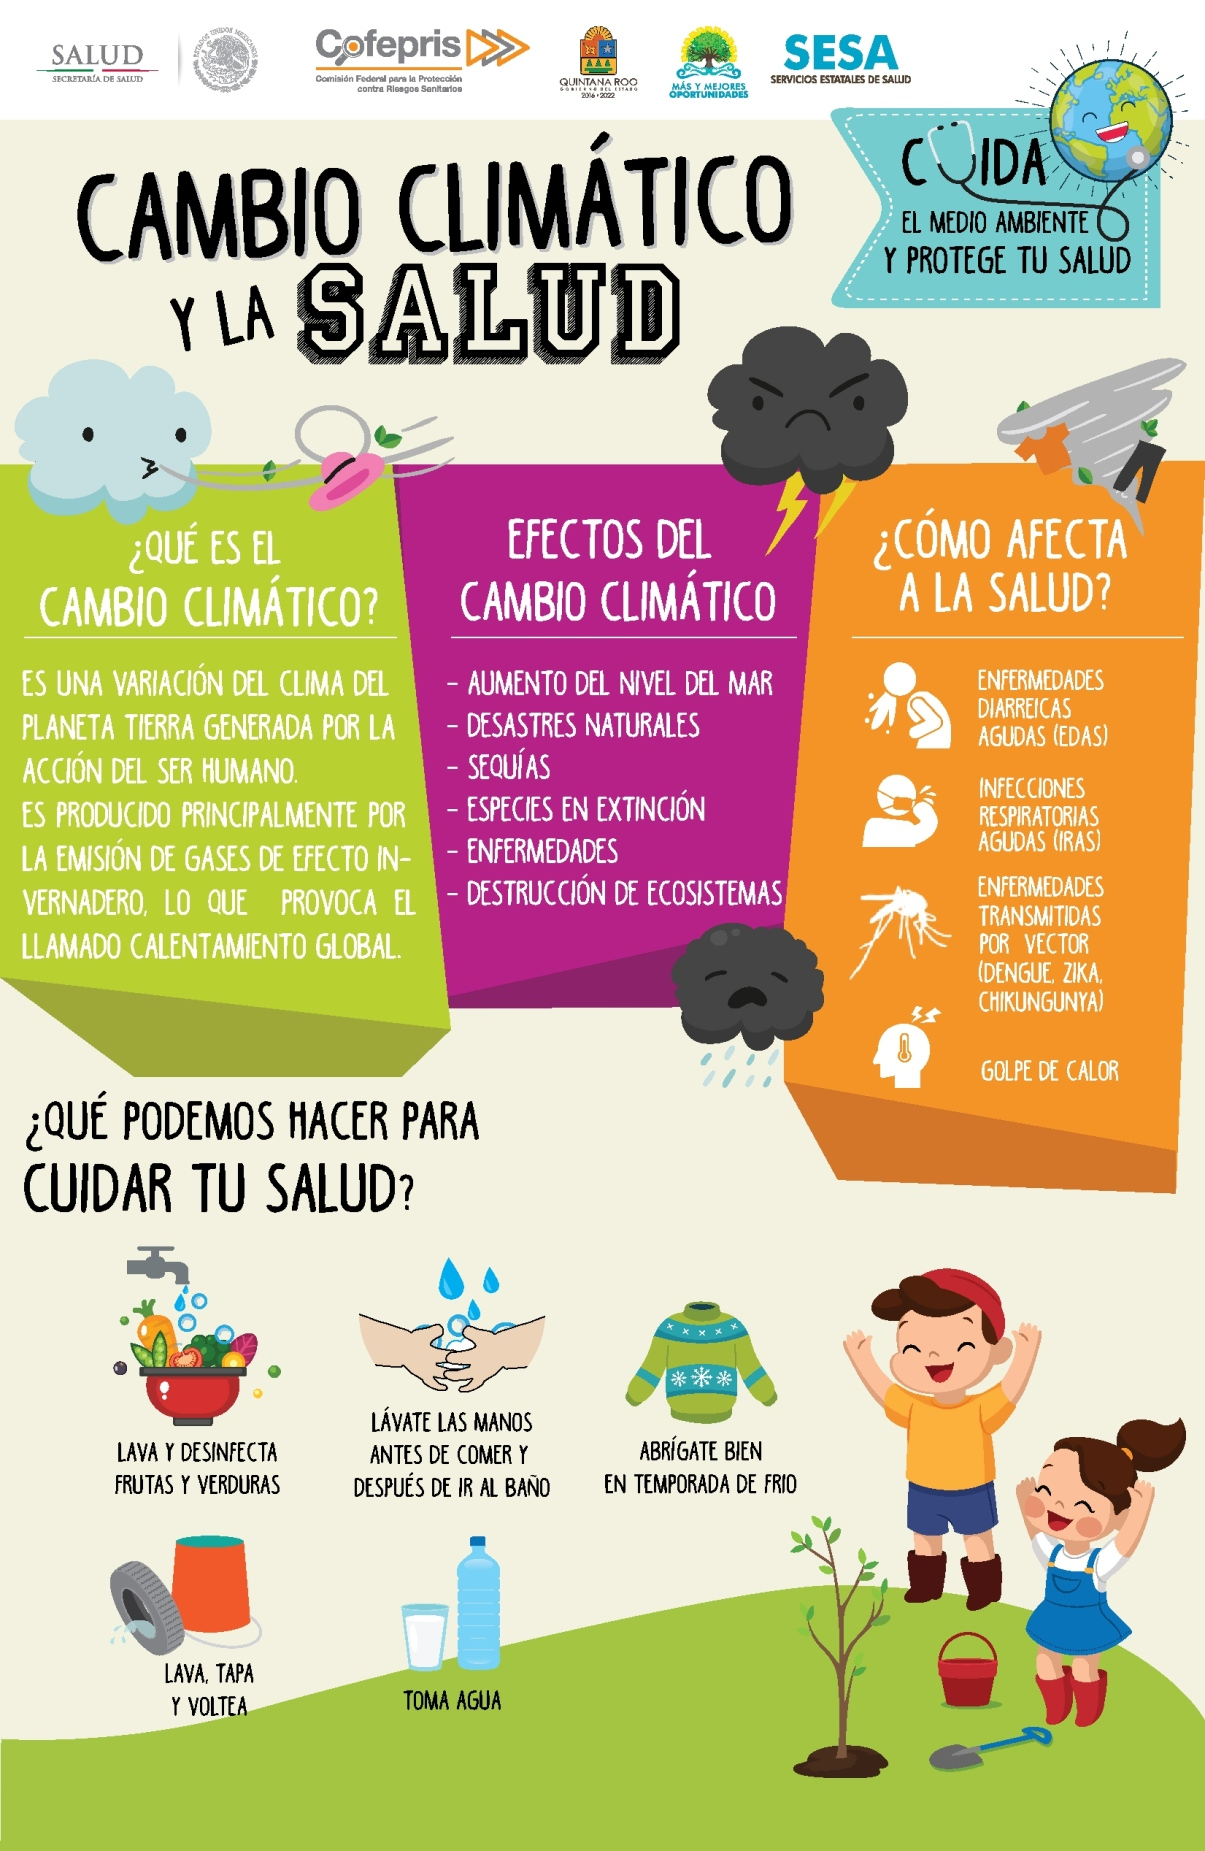 CAMBIOCLIMATICOYSALUD